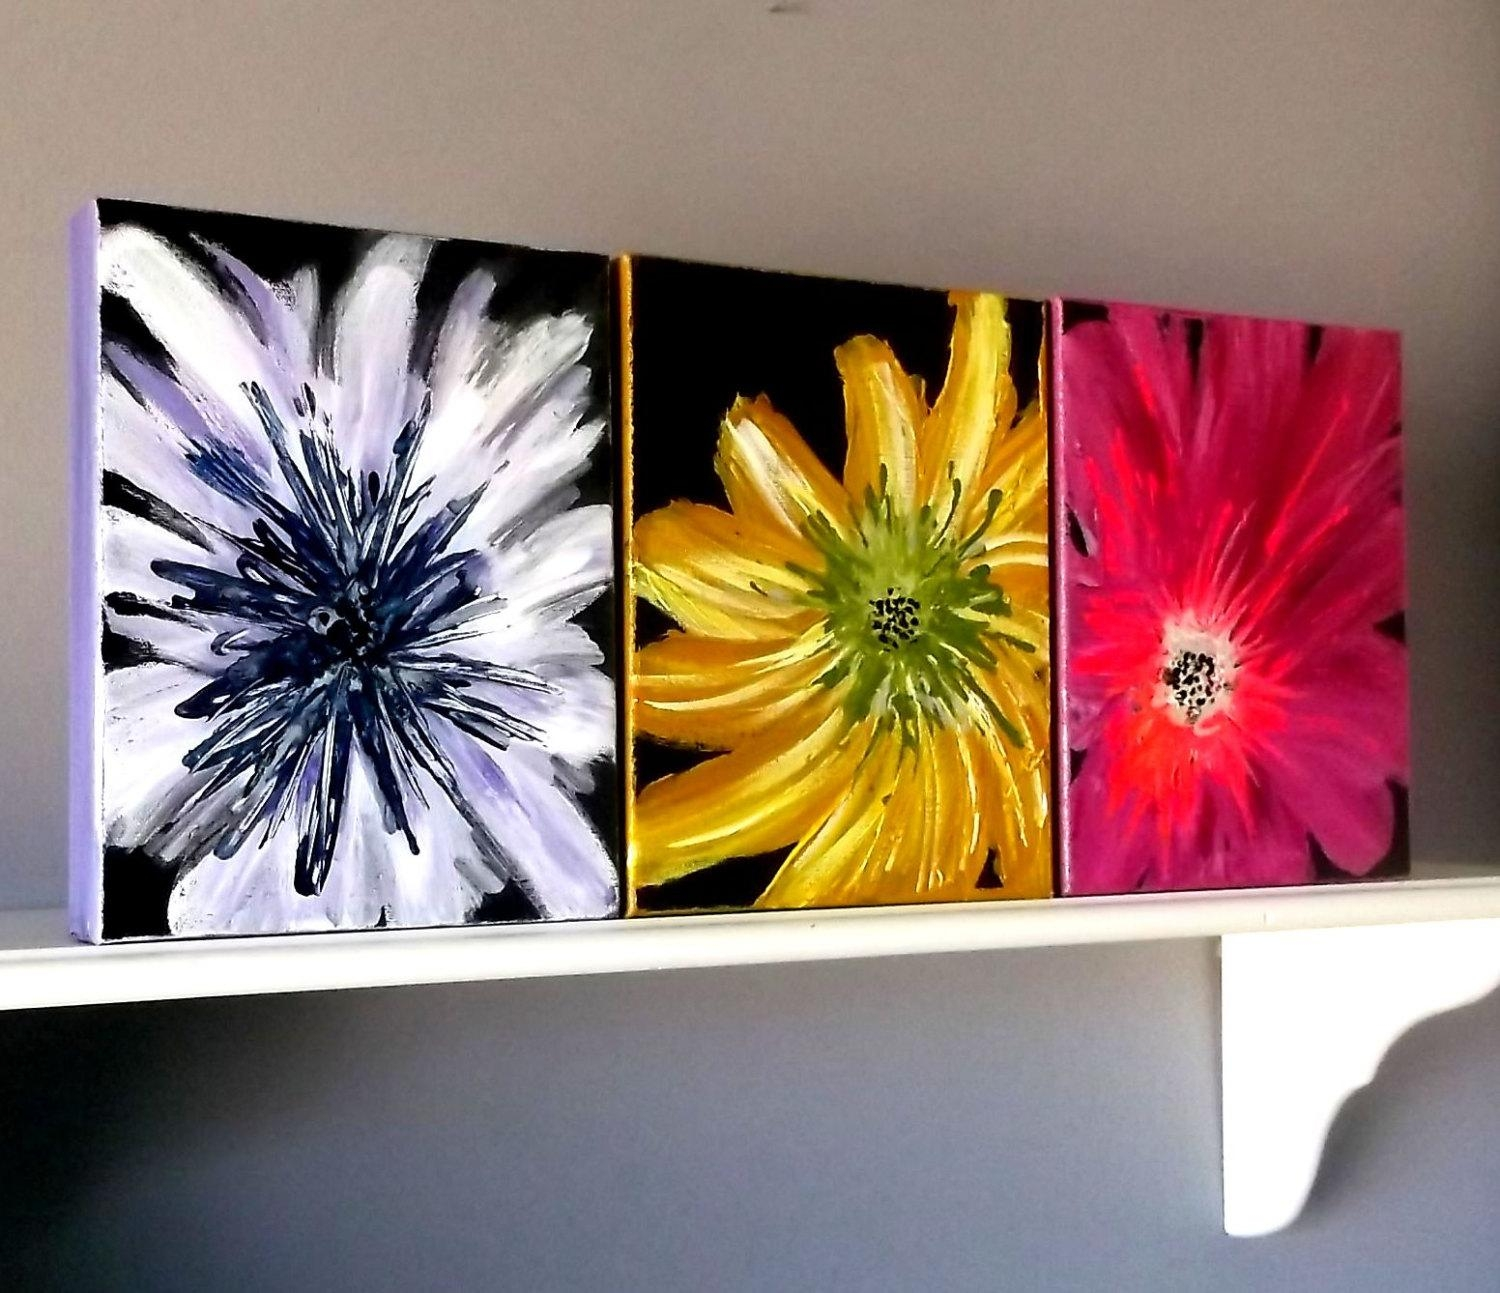 Flower Wall Decor Acrylic Painting Home Decor Wall Hanging With Regard To Vibrant Wall Art (Image 7 of 20)